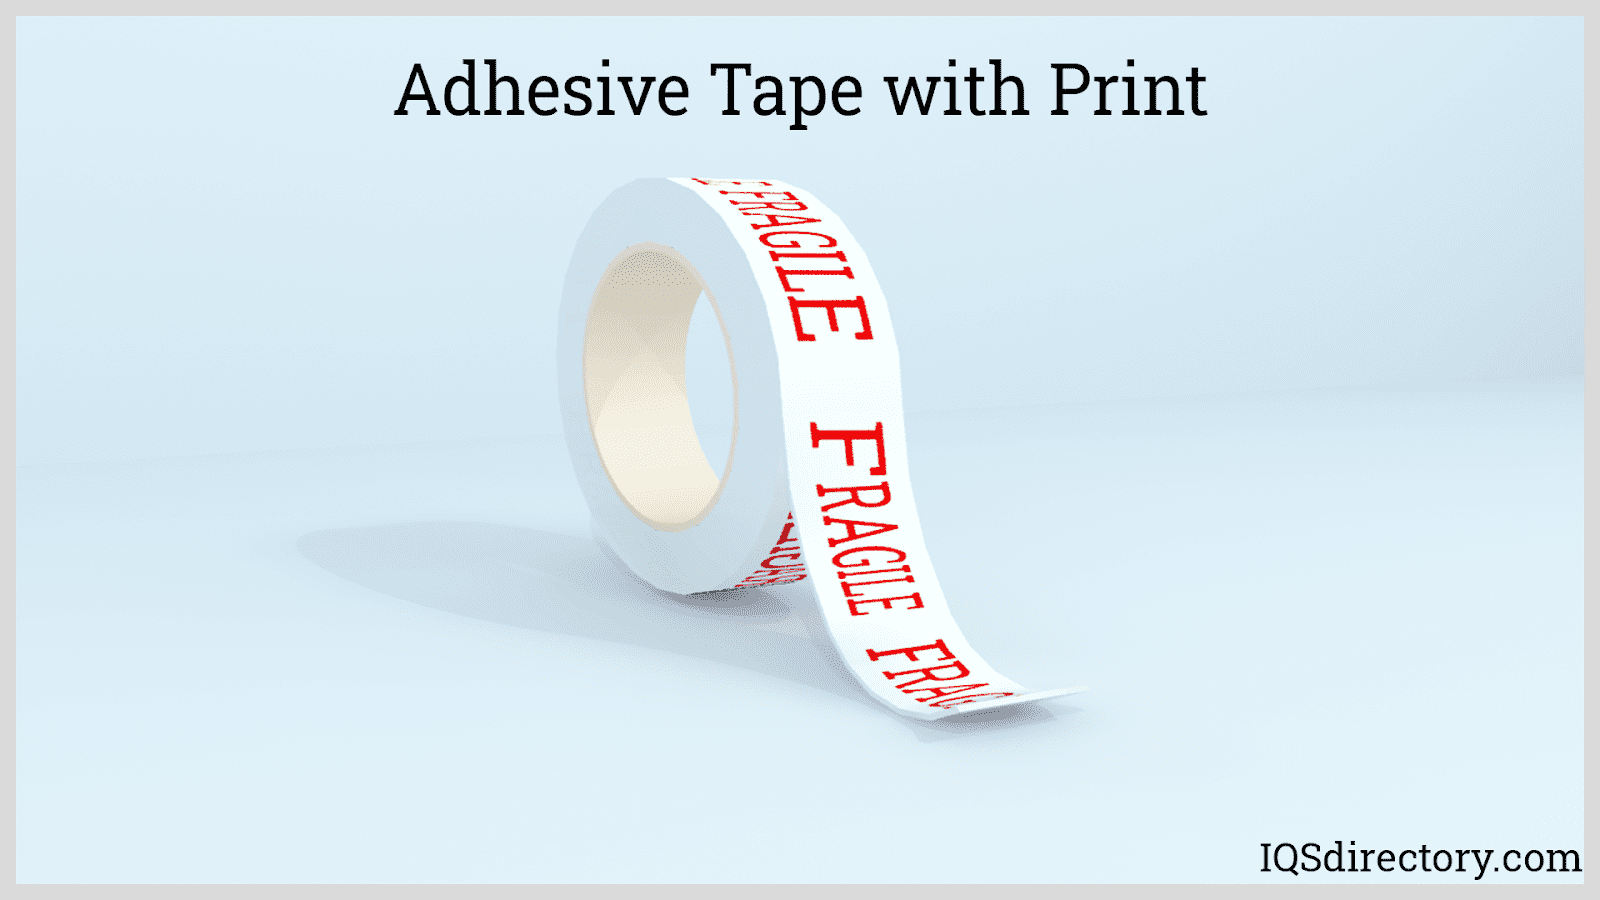 Adhesive Tape with Print